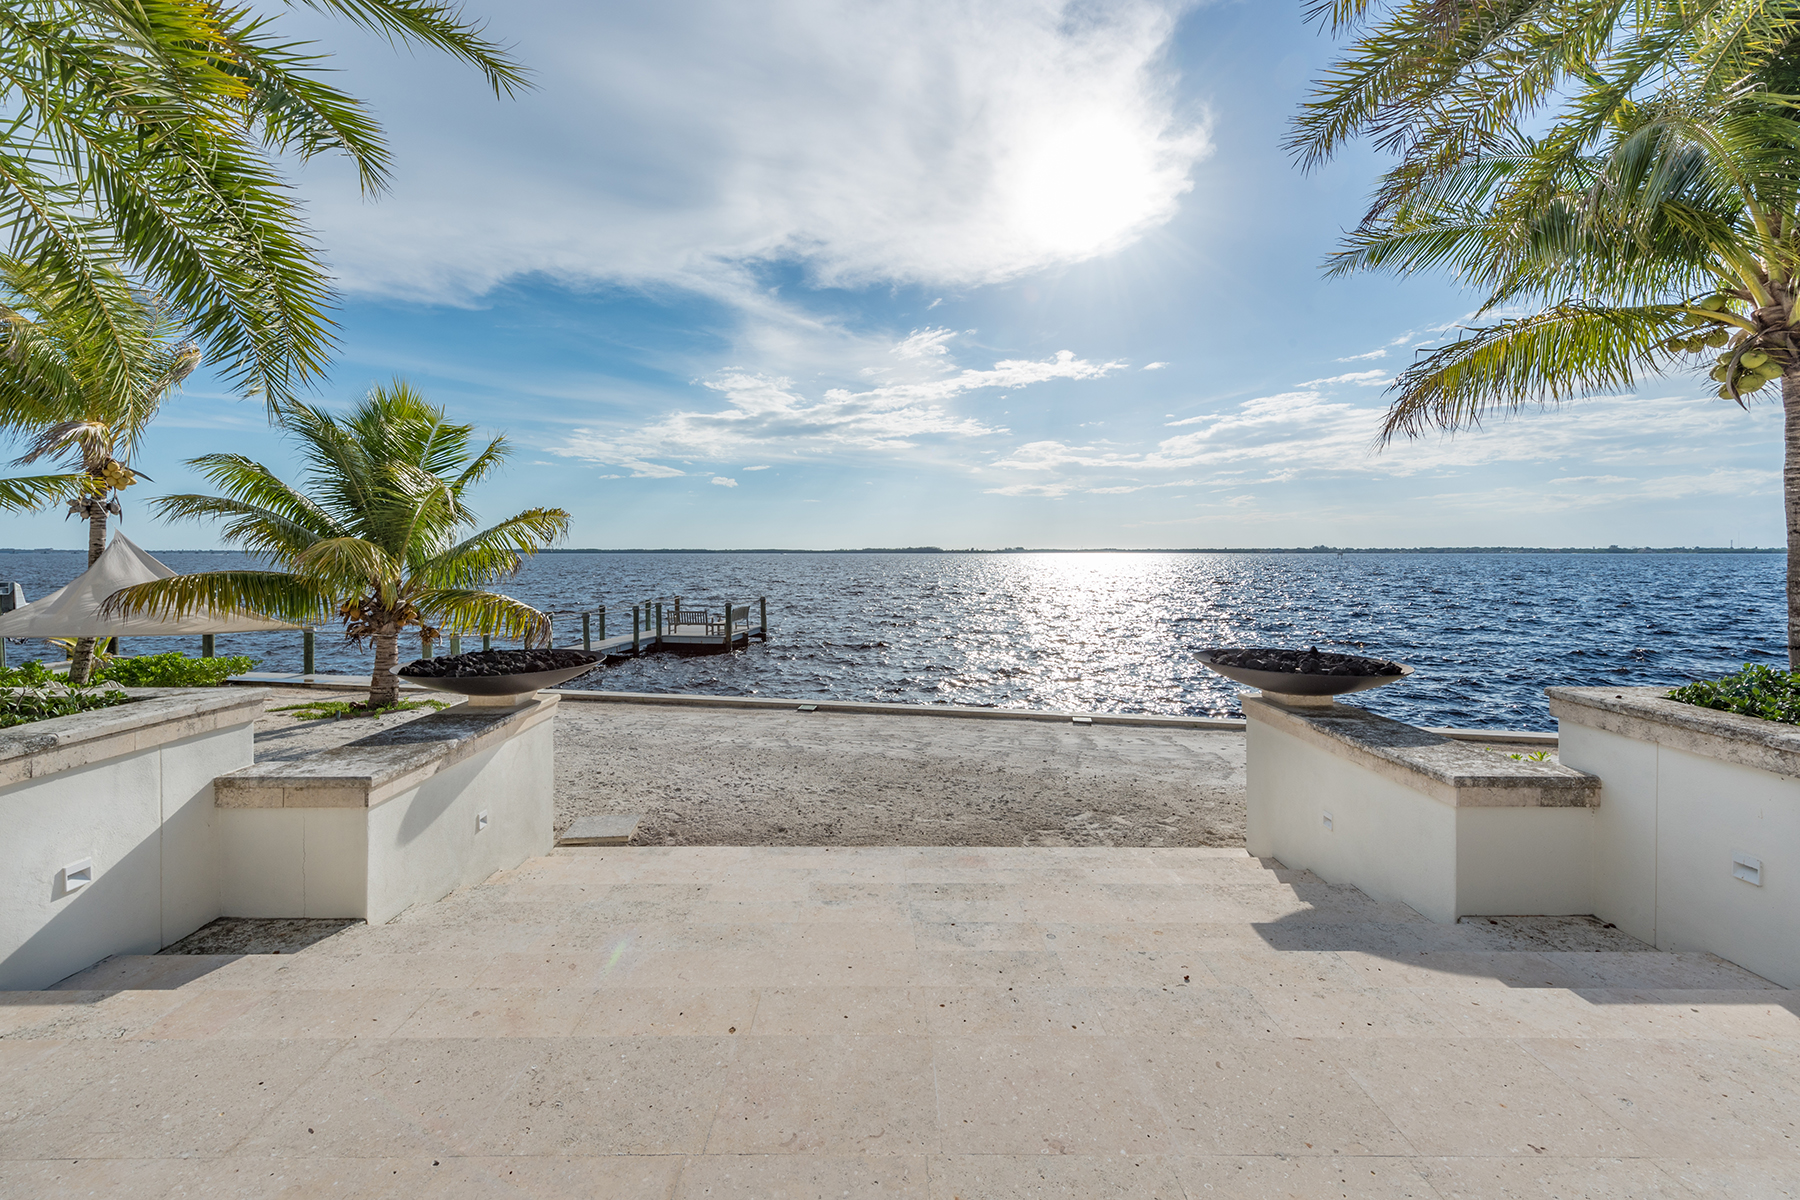 Single Family Home for Sale at Fort Myers 1240 Coconut Dr Fort Myers, Florida, 33901 United States